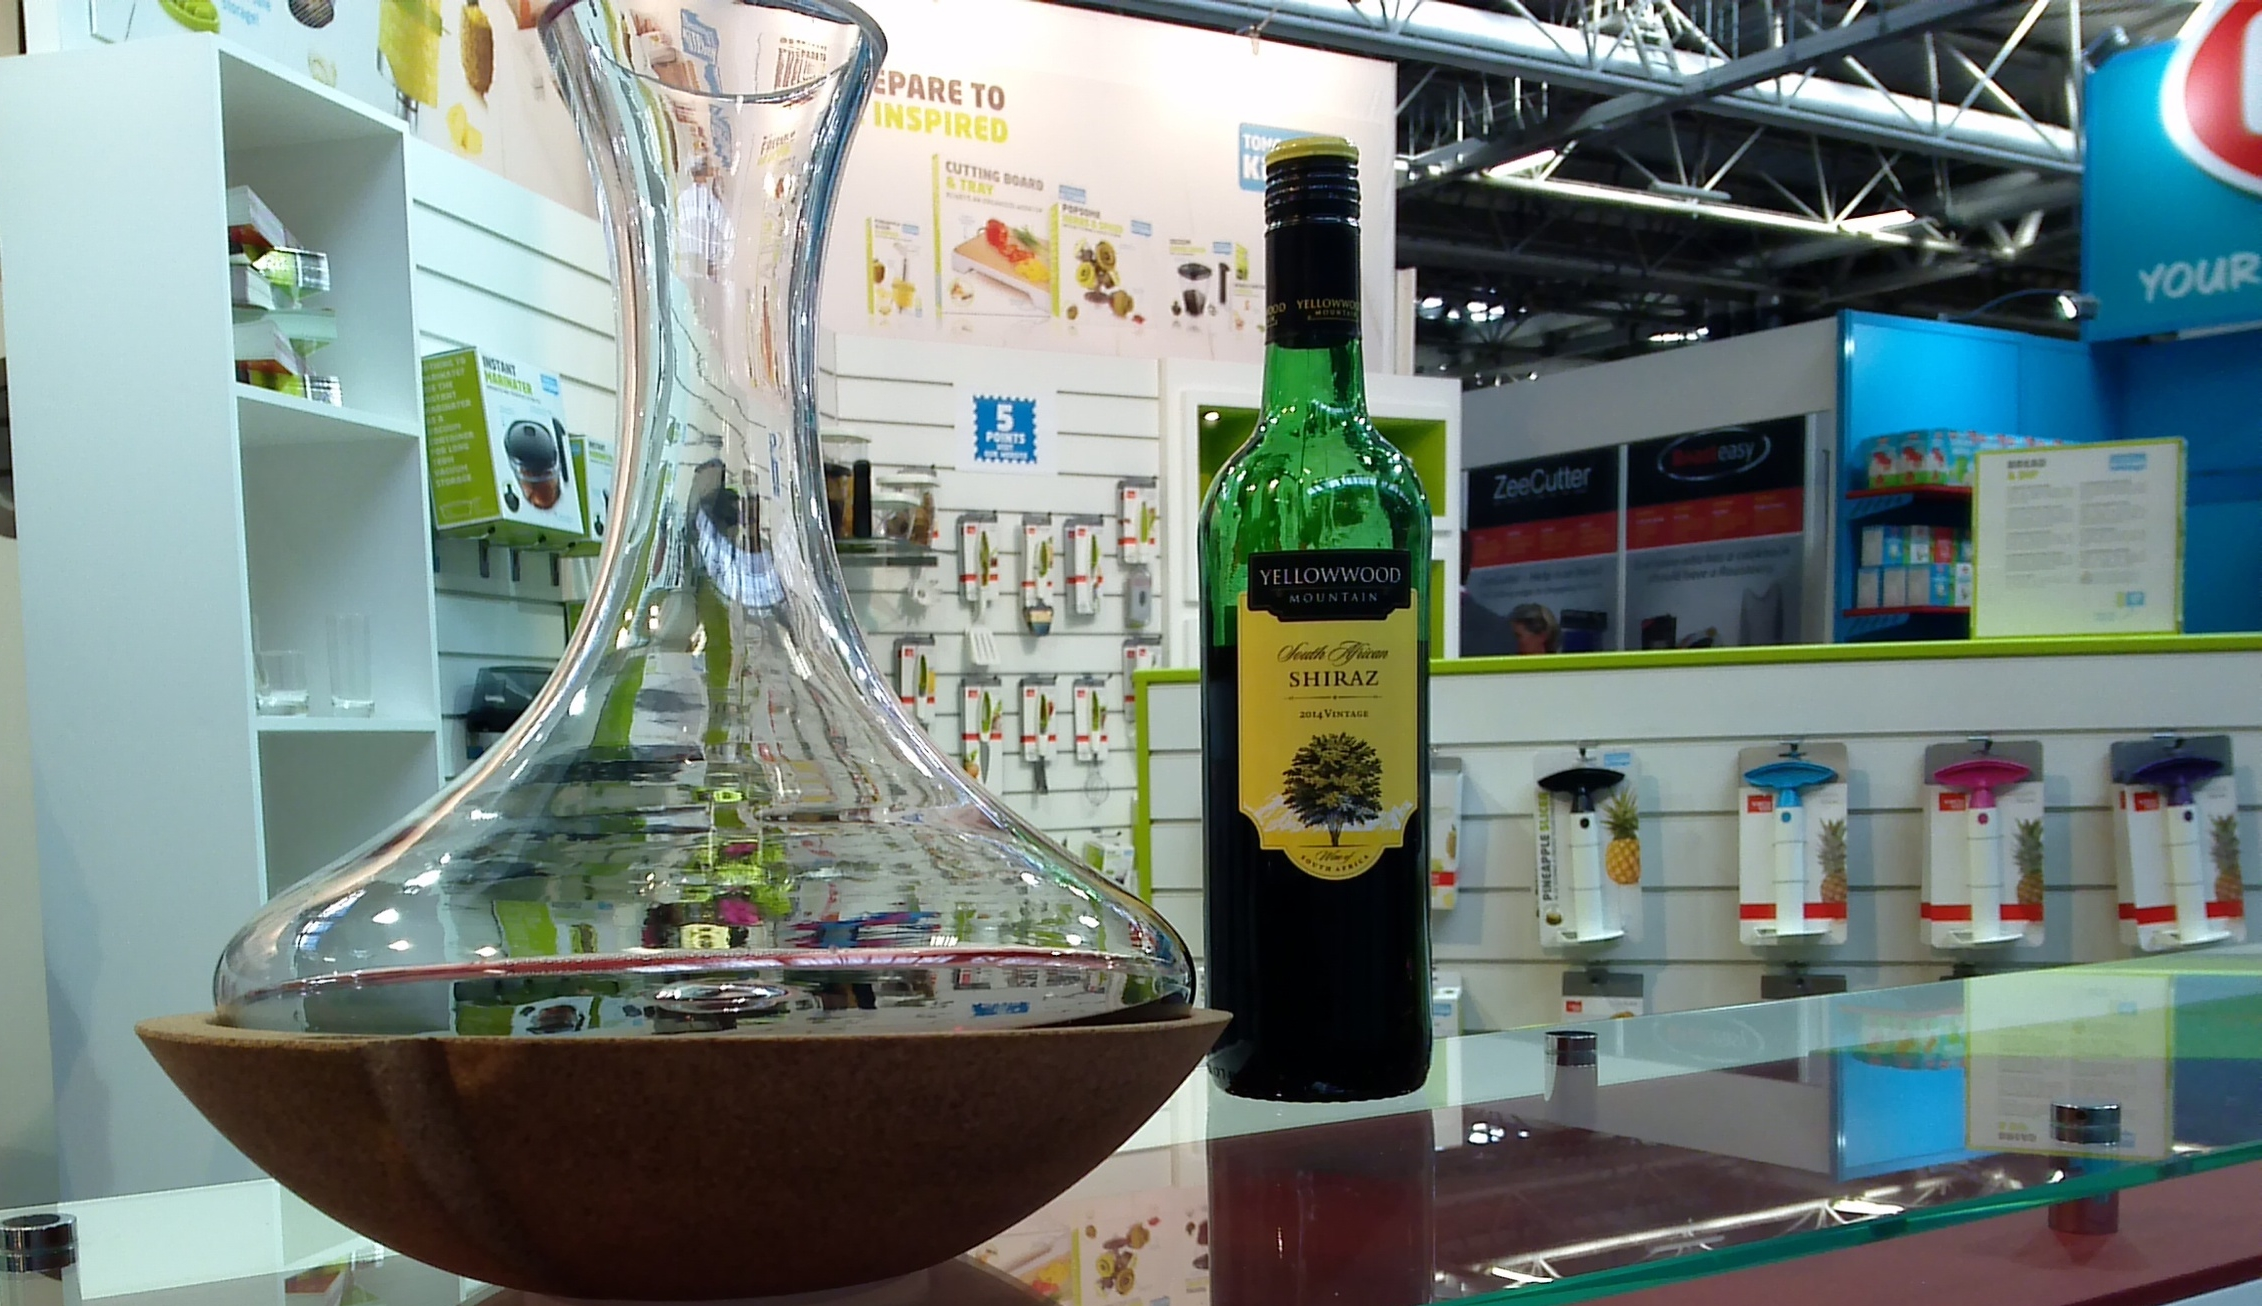 Vacu Vin's Swirling Carafe is a real head-turner. See the video of it spinning below